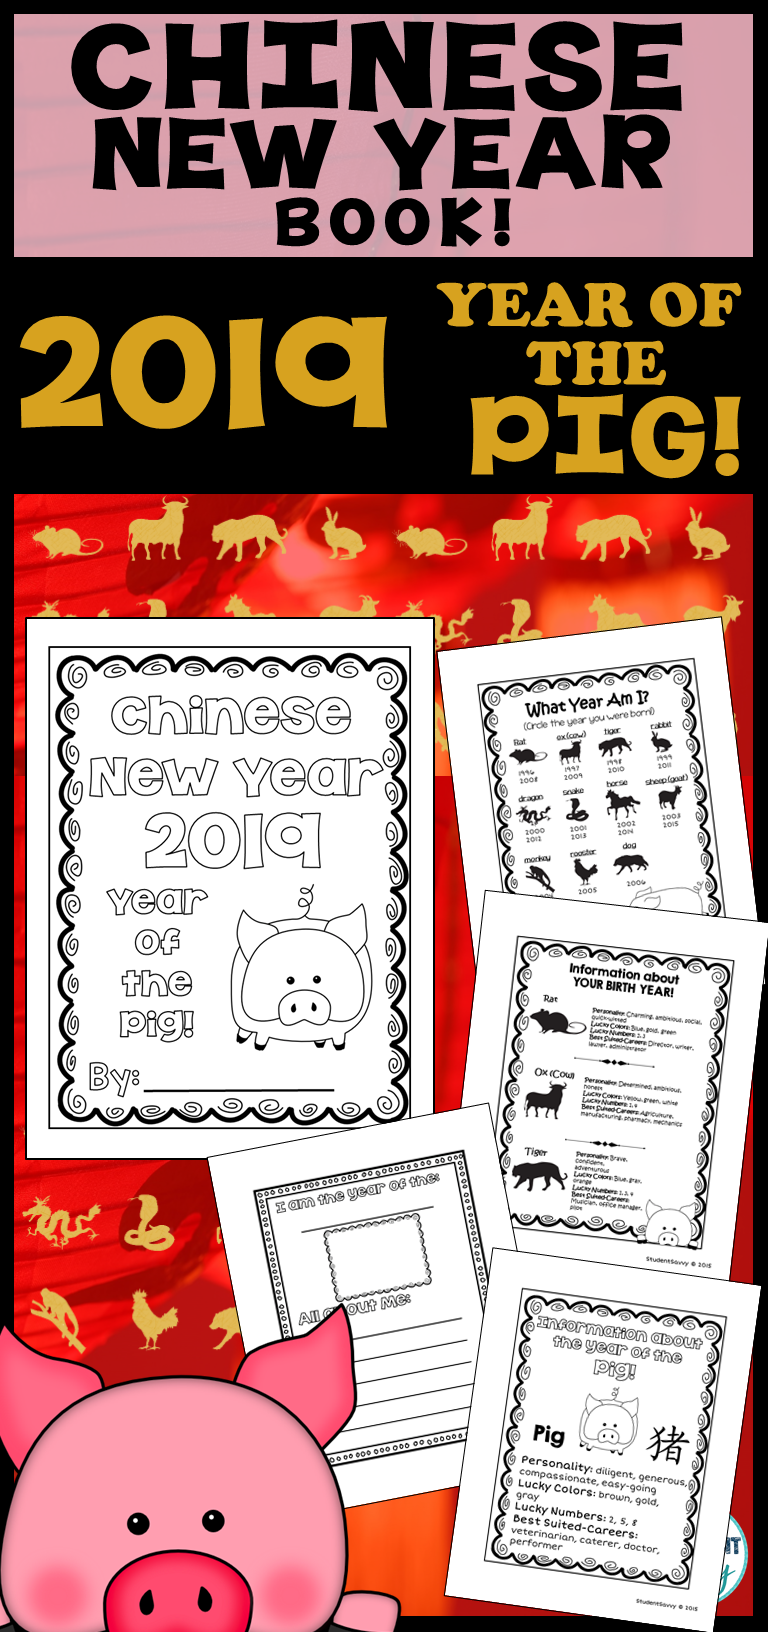 Chinese New Year 2019 Activities Year of the Pig Mini